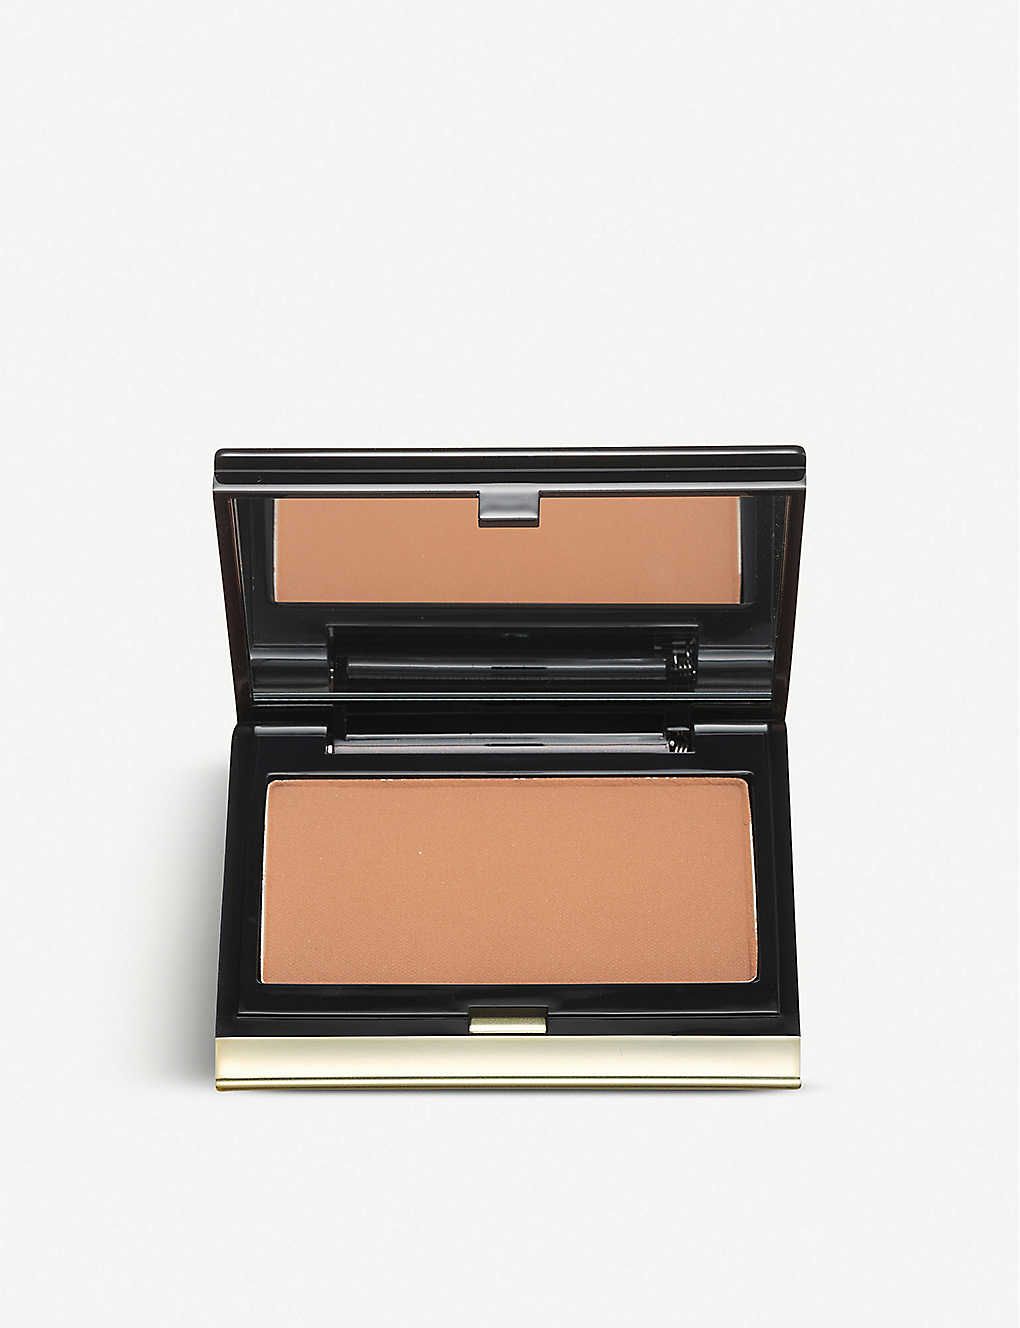 KEVYN AUCOIN: The Sculpting Contour Powder 4g